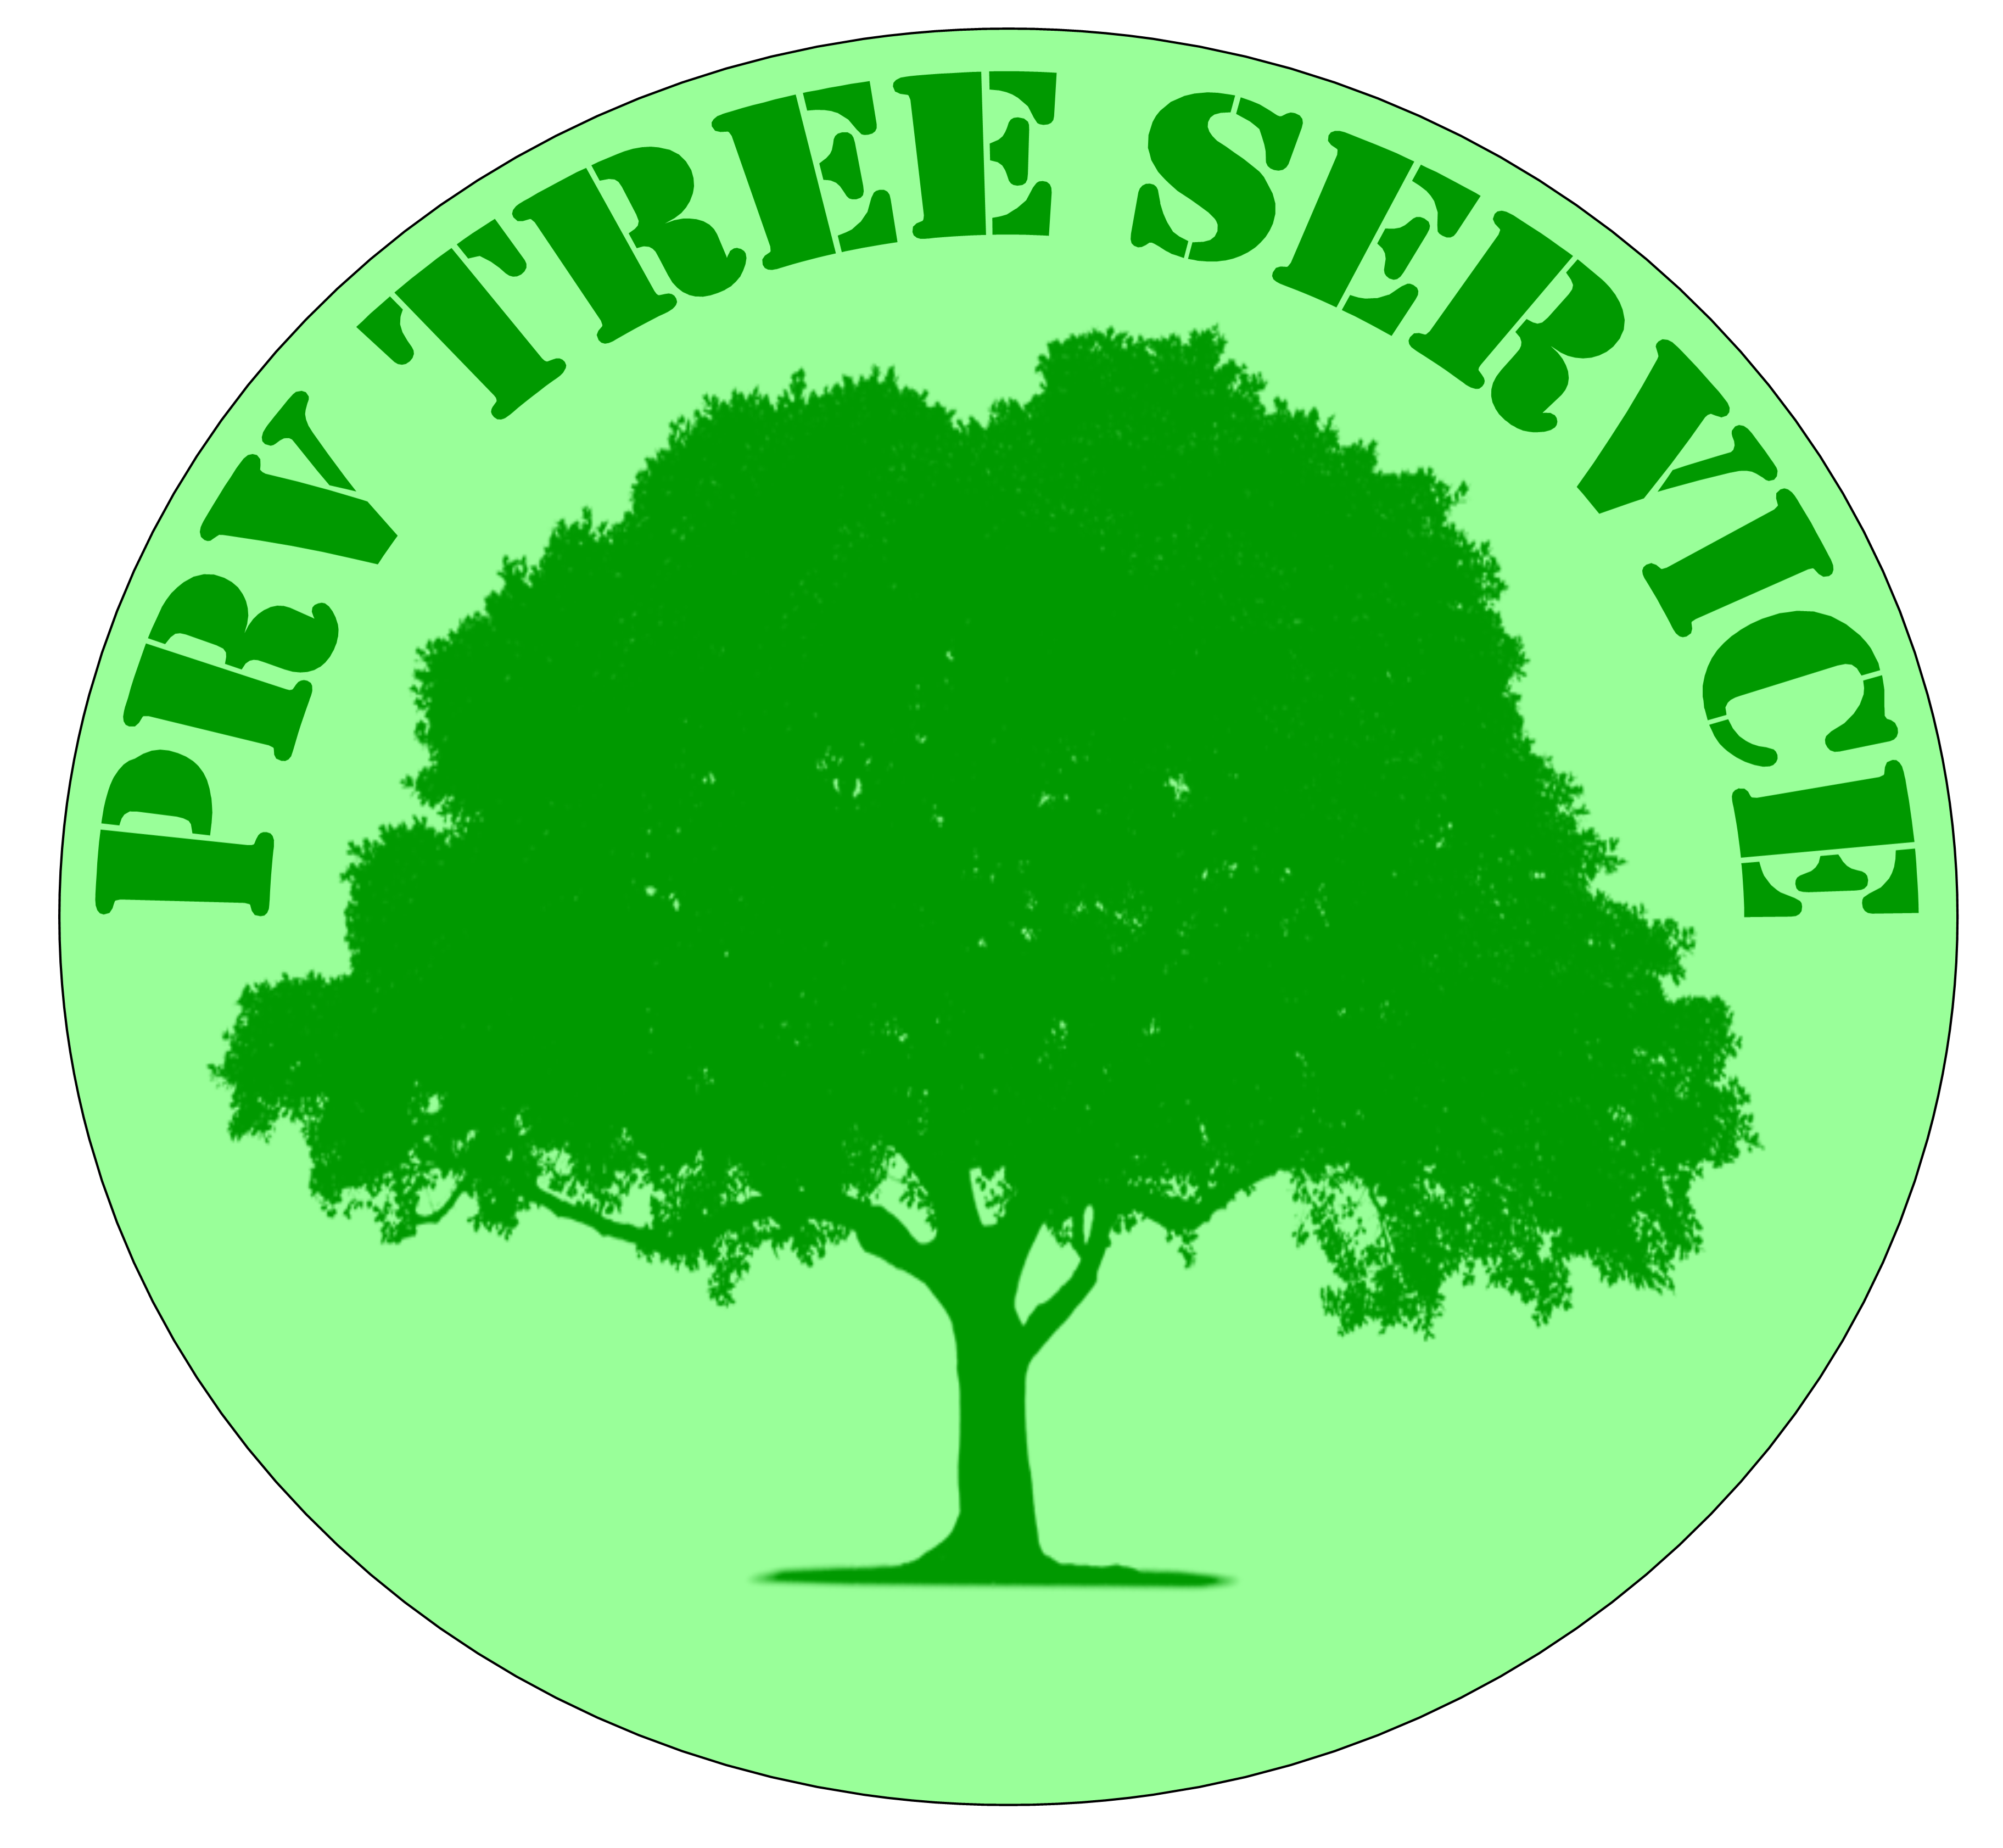 Tree trimming clipart banner library library About | PRV Tree Service banner library library